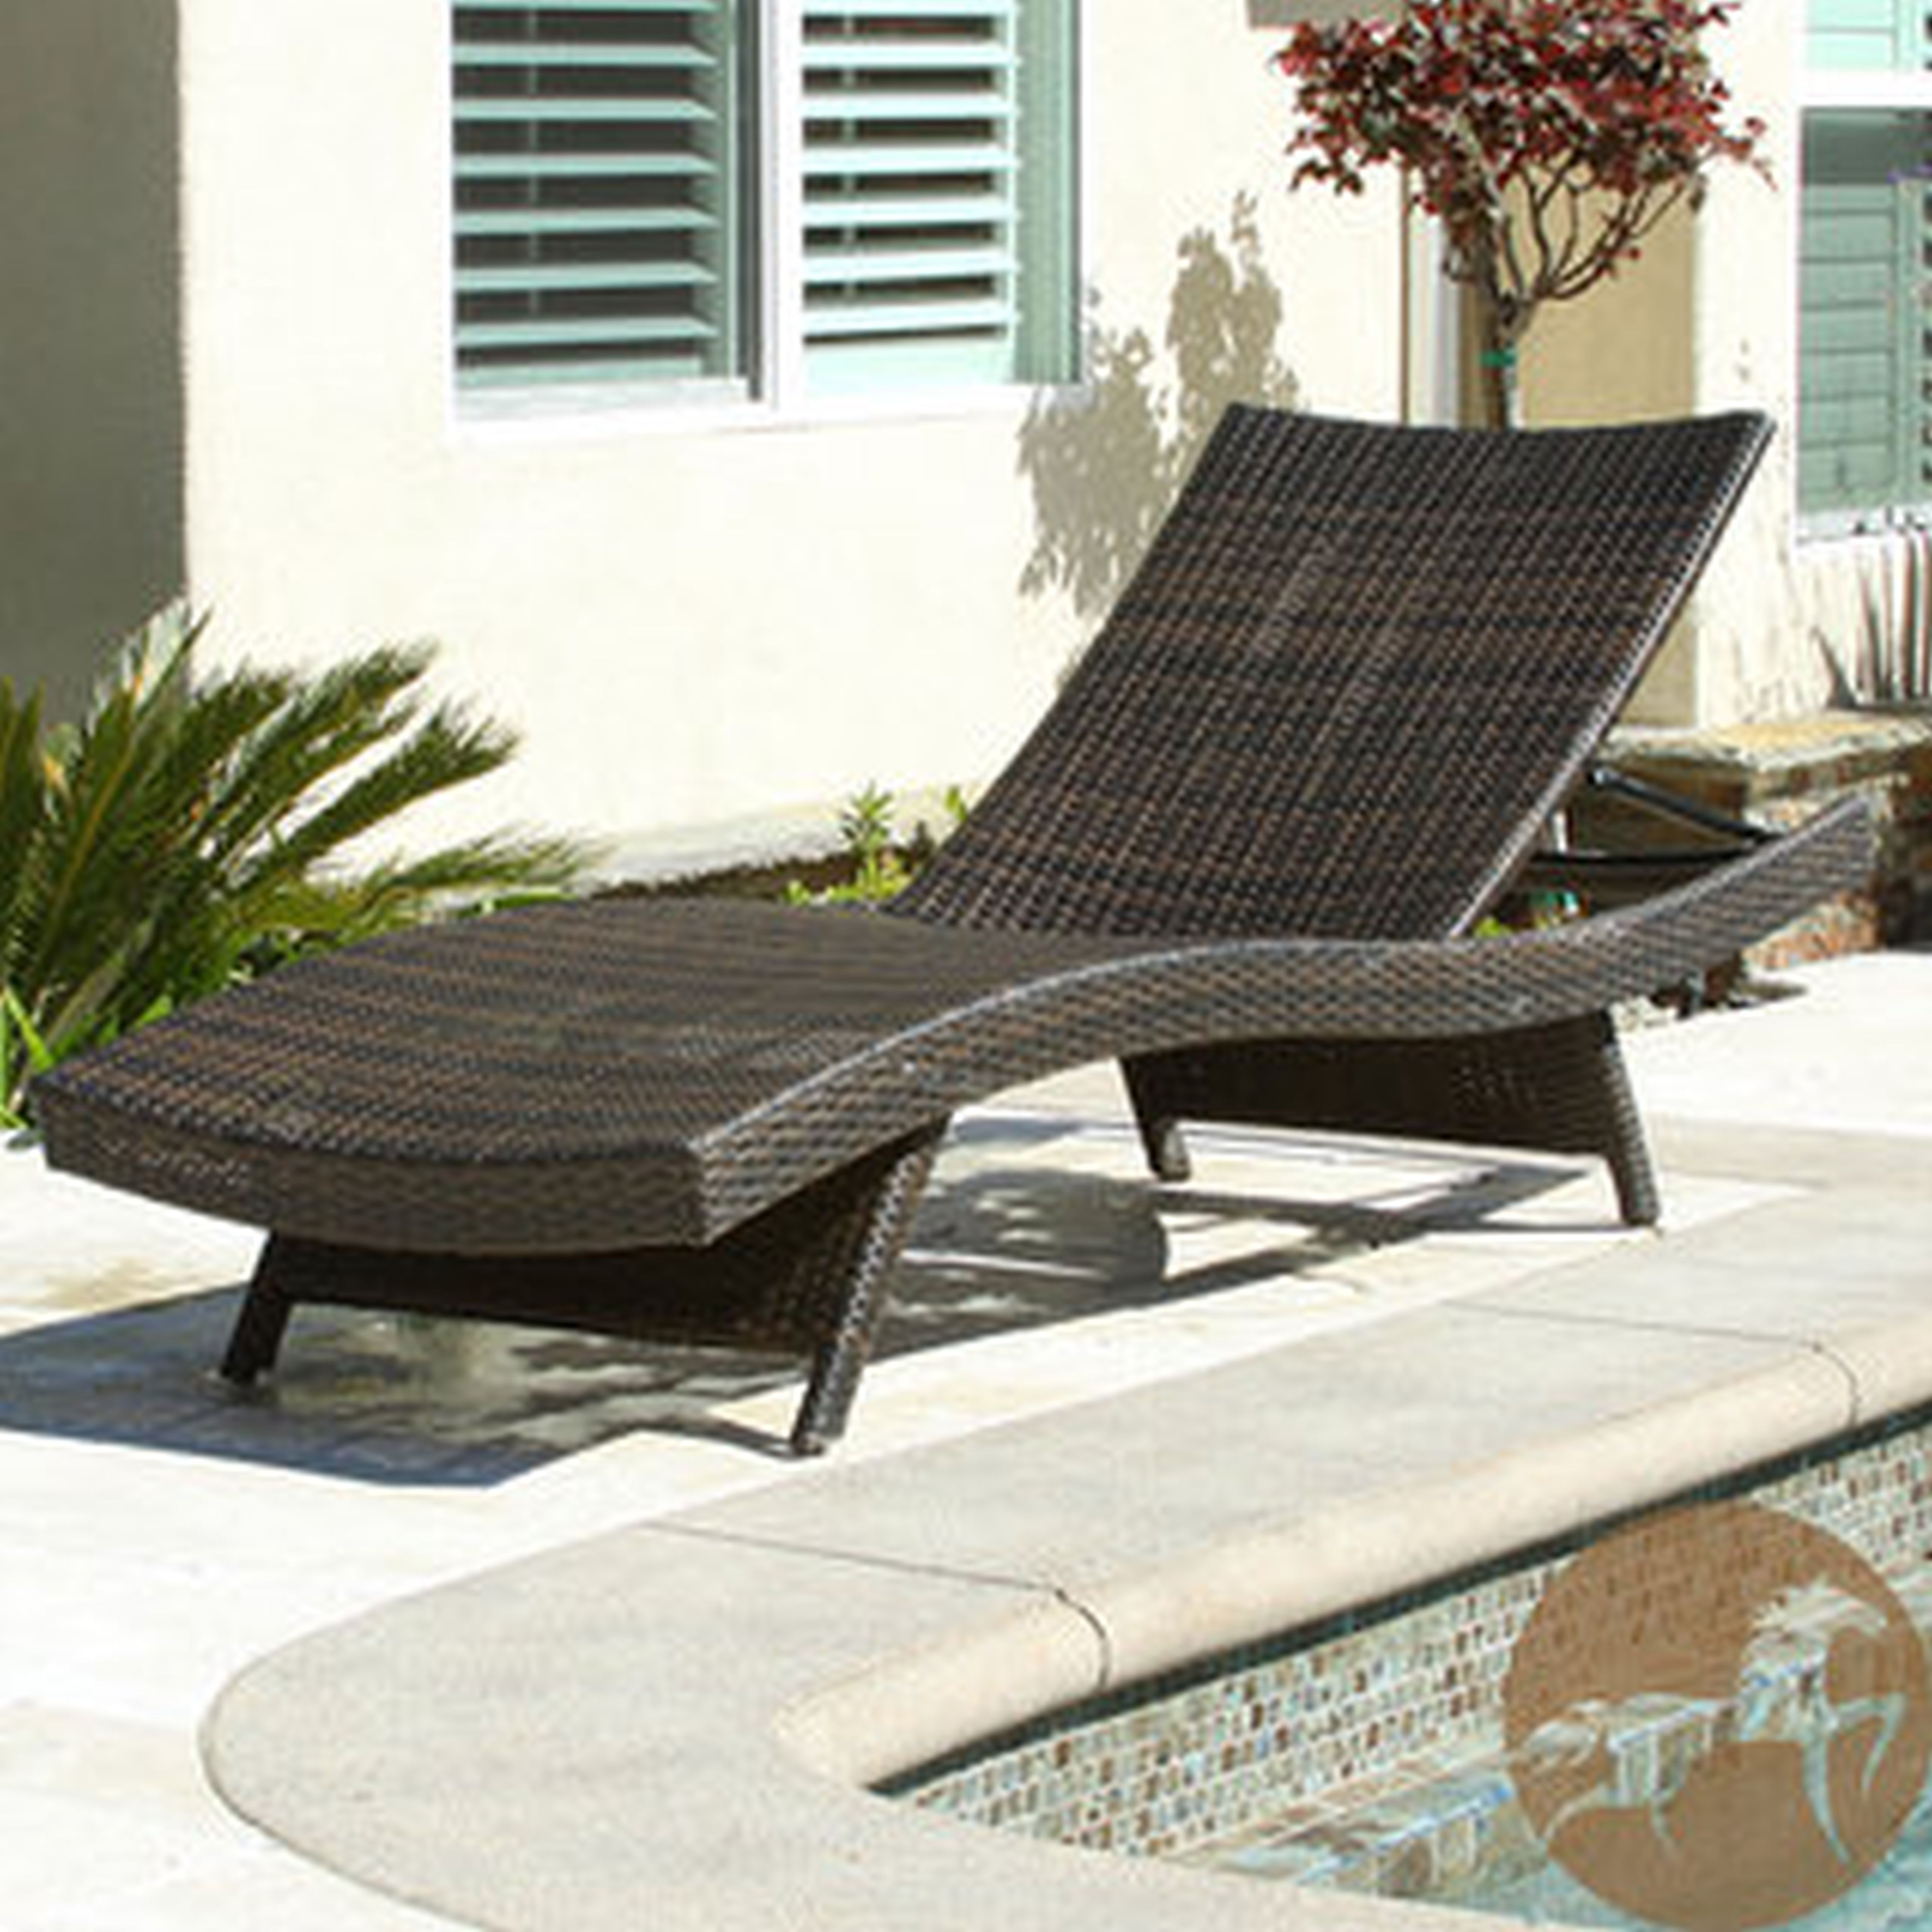 outdoor pool lounge chairs leather swivel rocker chair patio chaise as the must have furniture in your